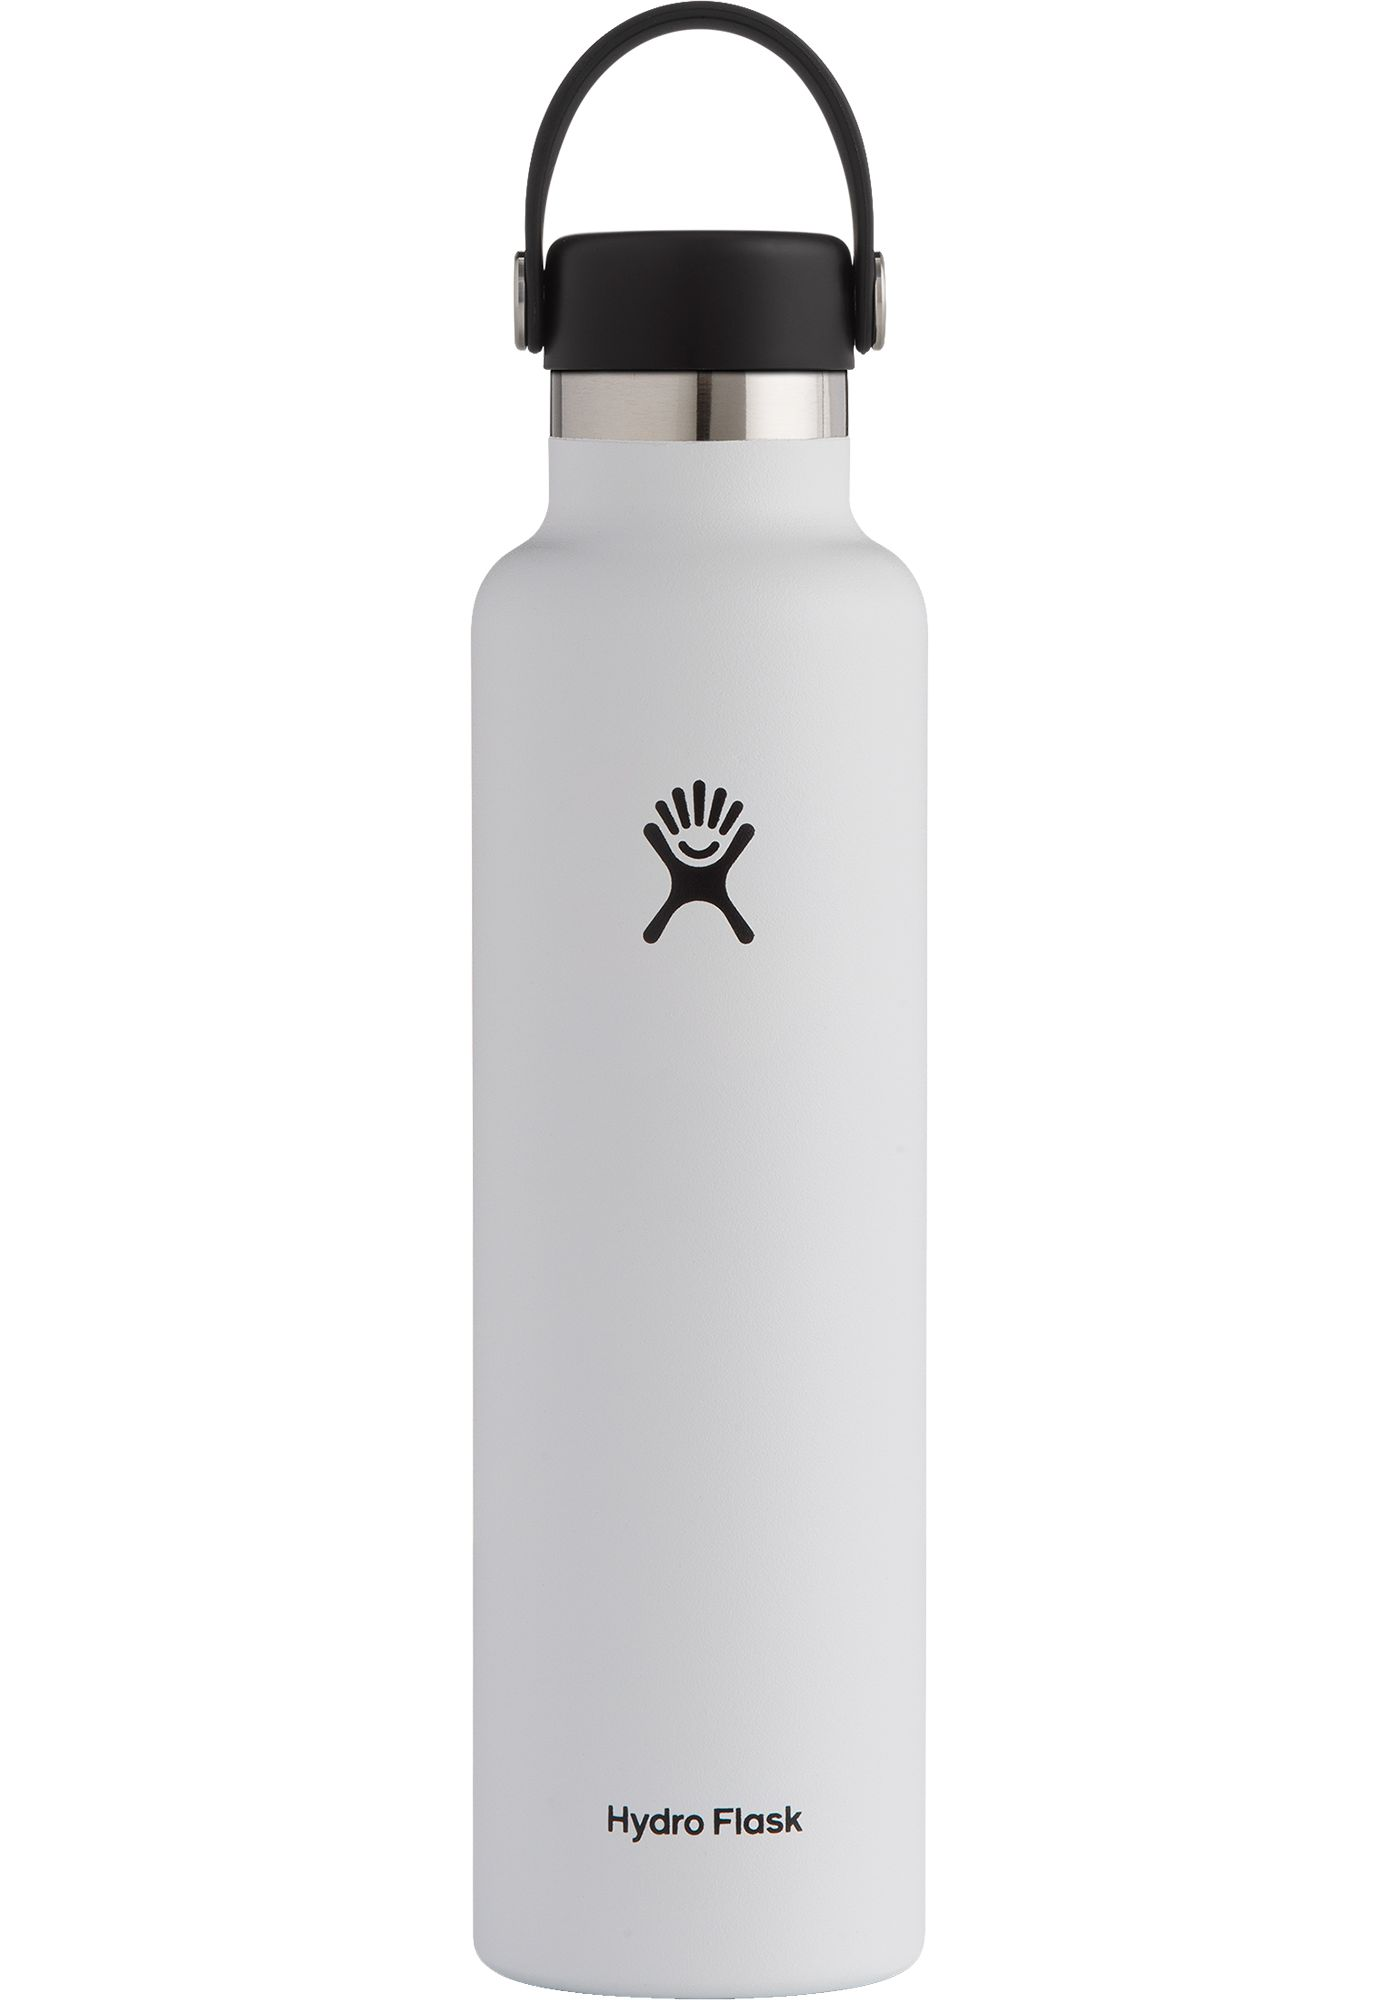 Hydro Flask Standard Mouth 24 oz. Bottle